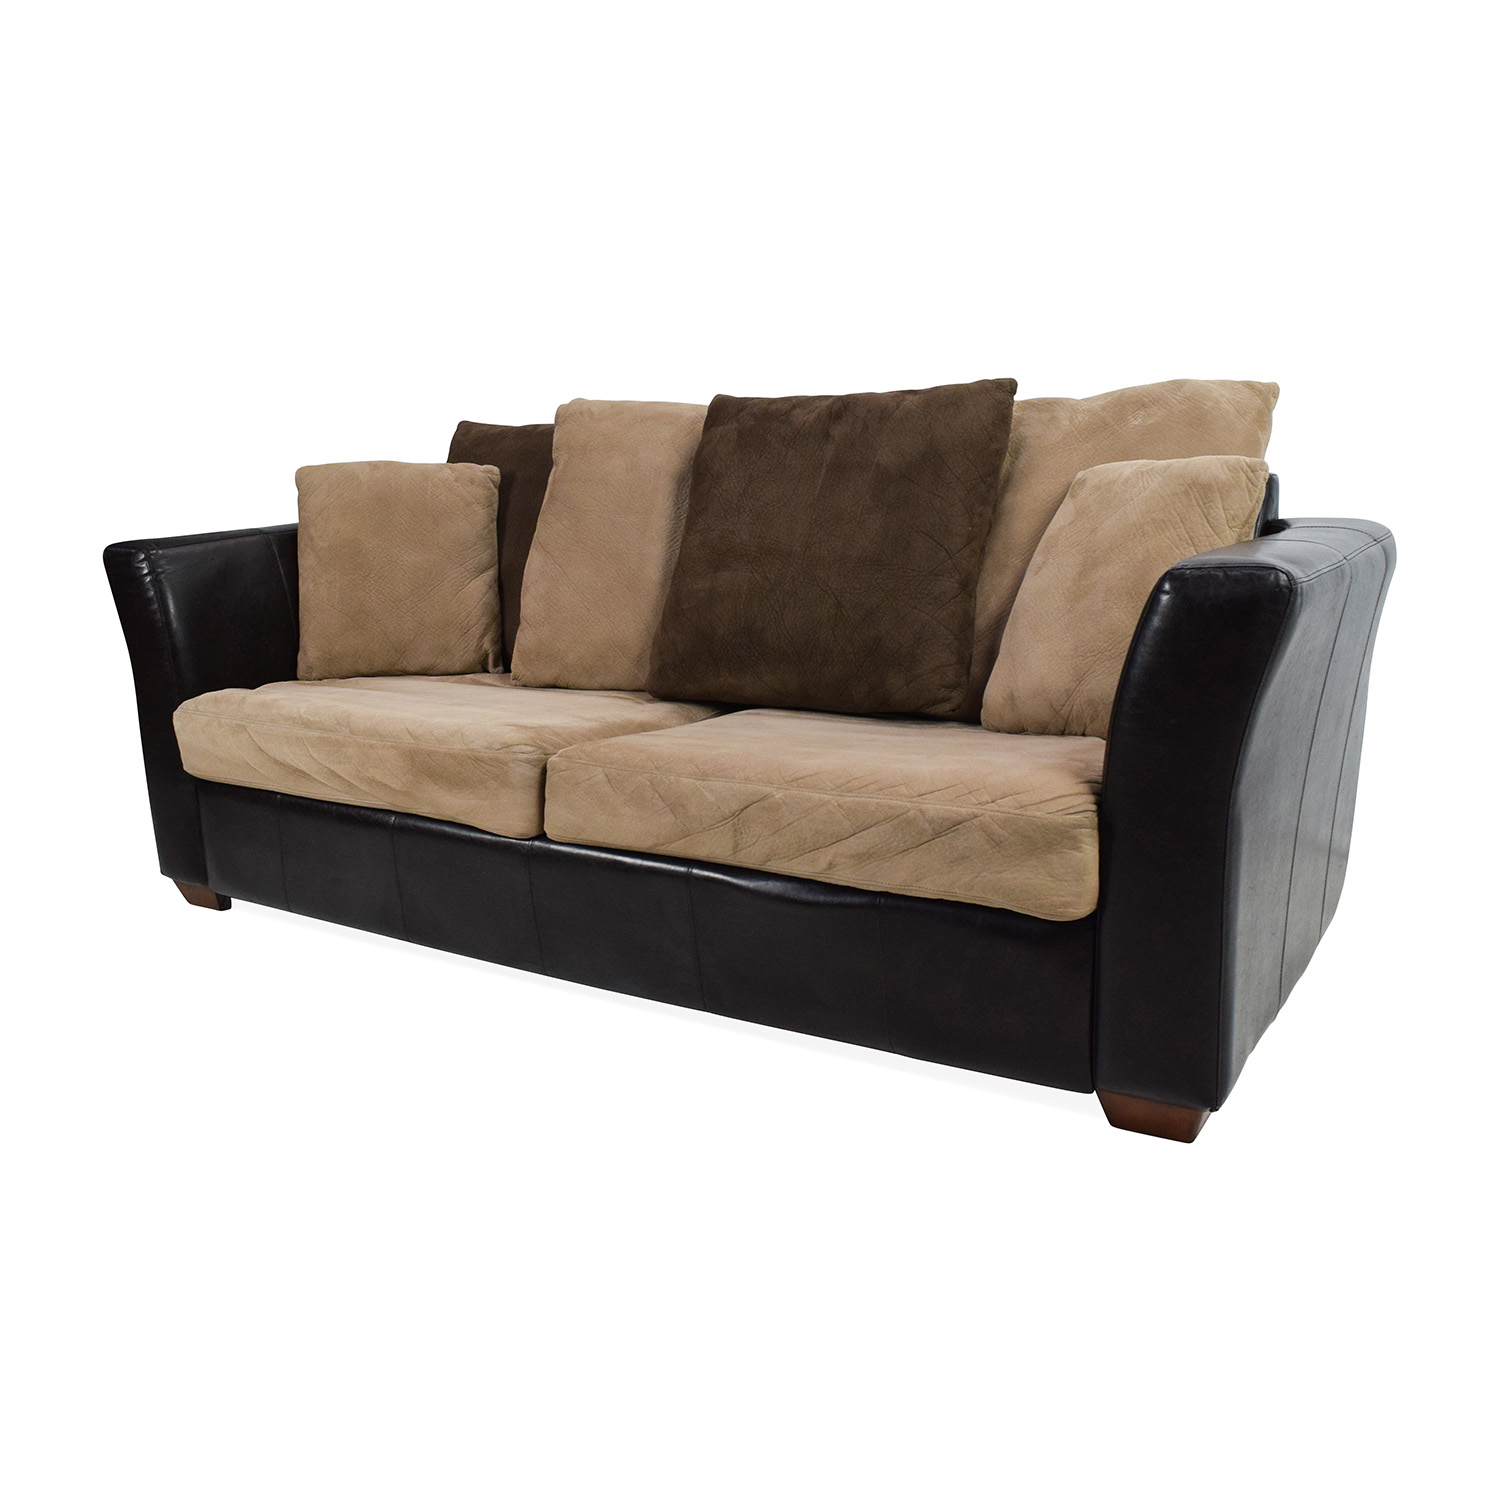 Jennifer convertibles sleeper sofa best jennifer for Sectional sleeper sofa nj